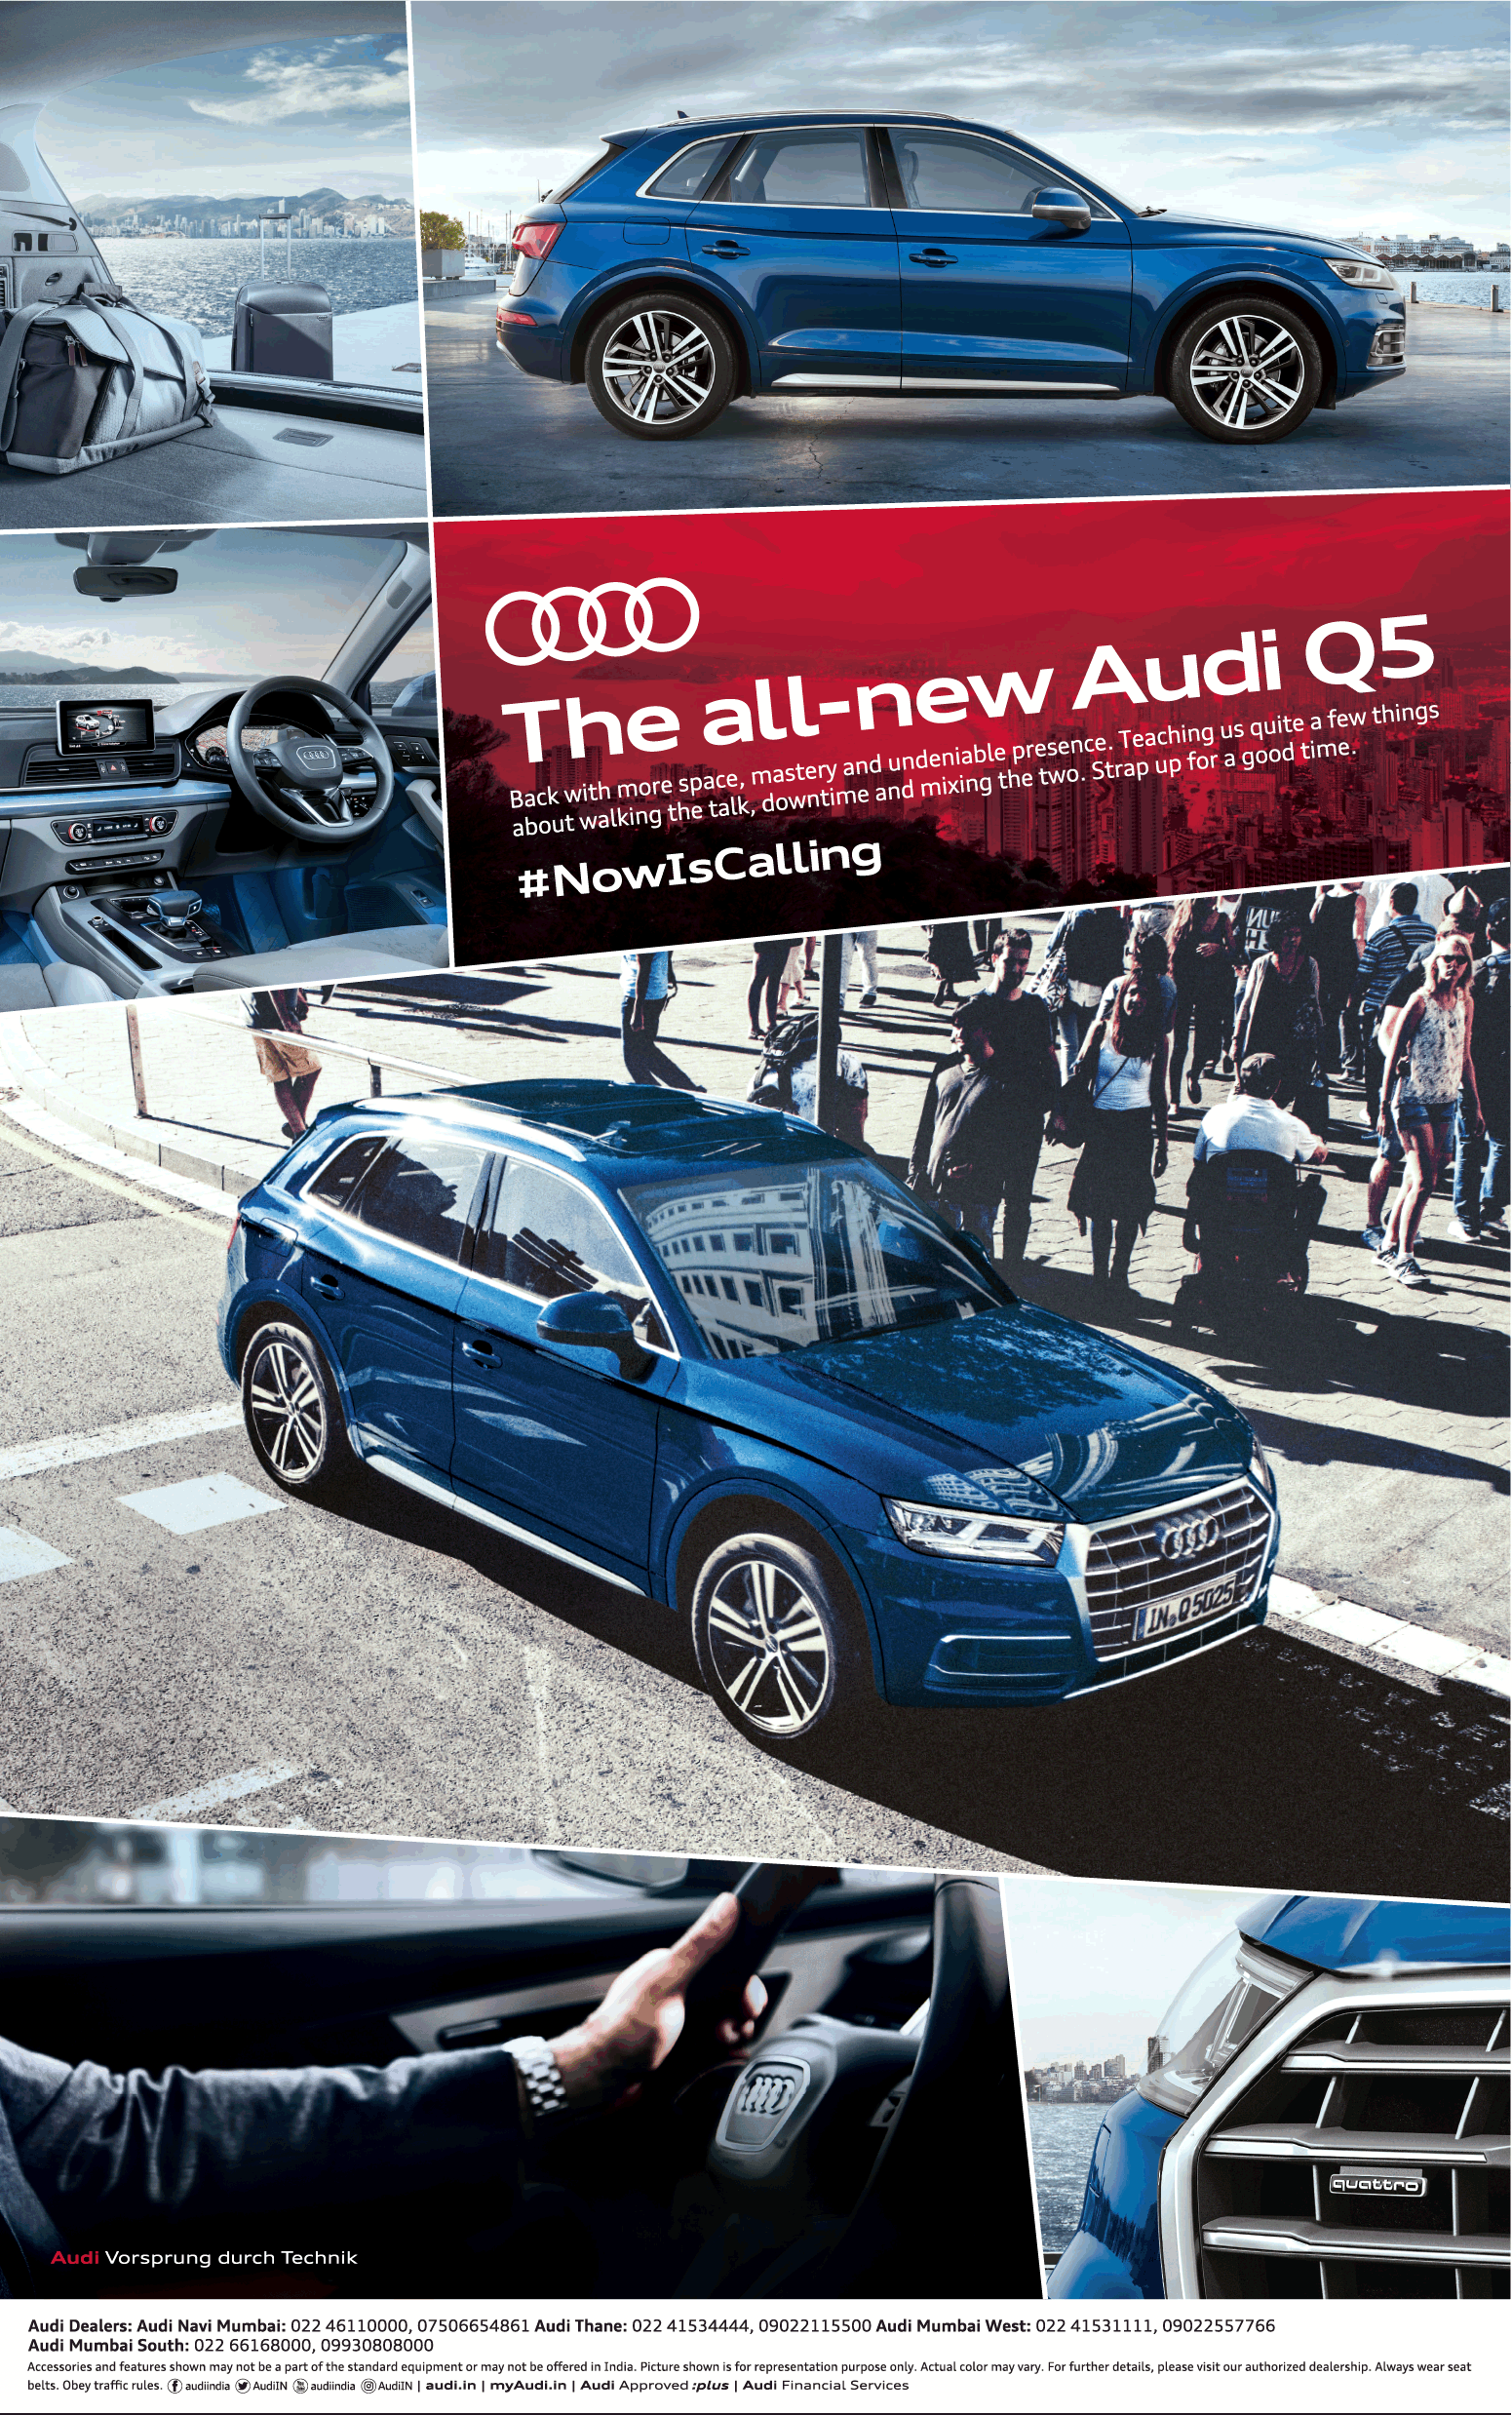 The All New Audi Q5 Now Is Calling Ad Advert Gallery